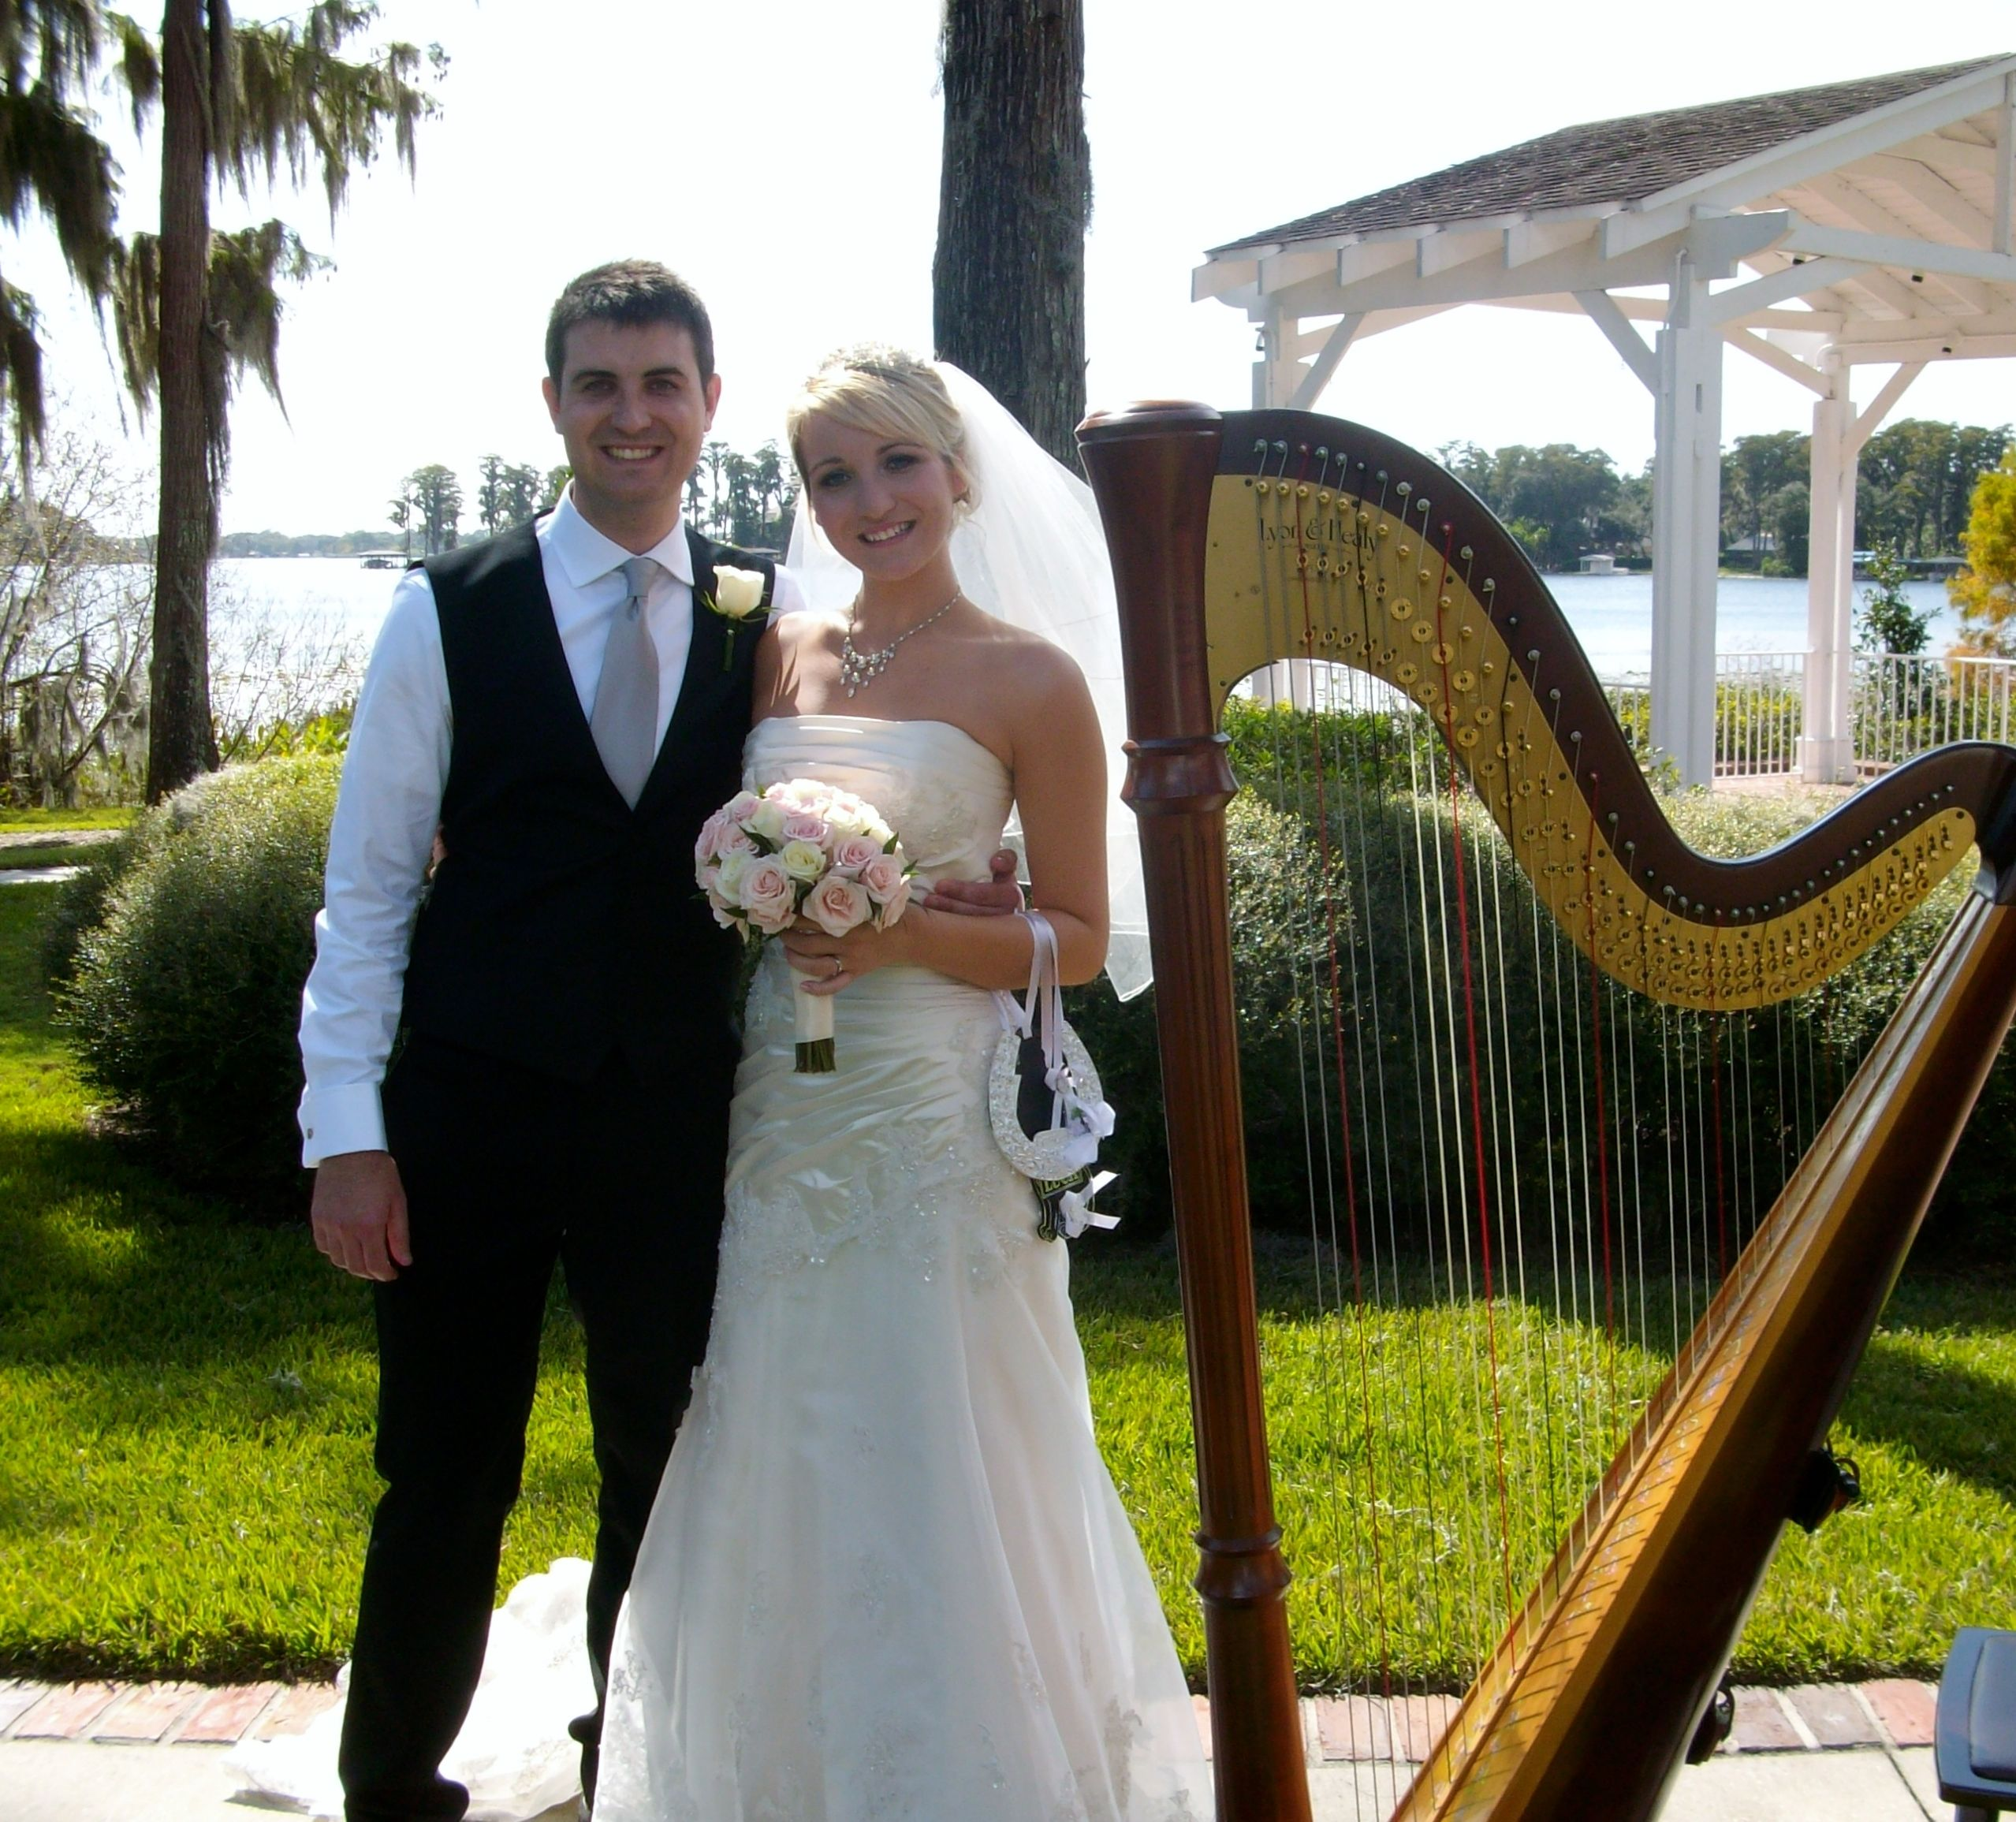 Destination Wedding At Cypress Grove Estate House In Orlando This Couple Came From The UK